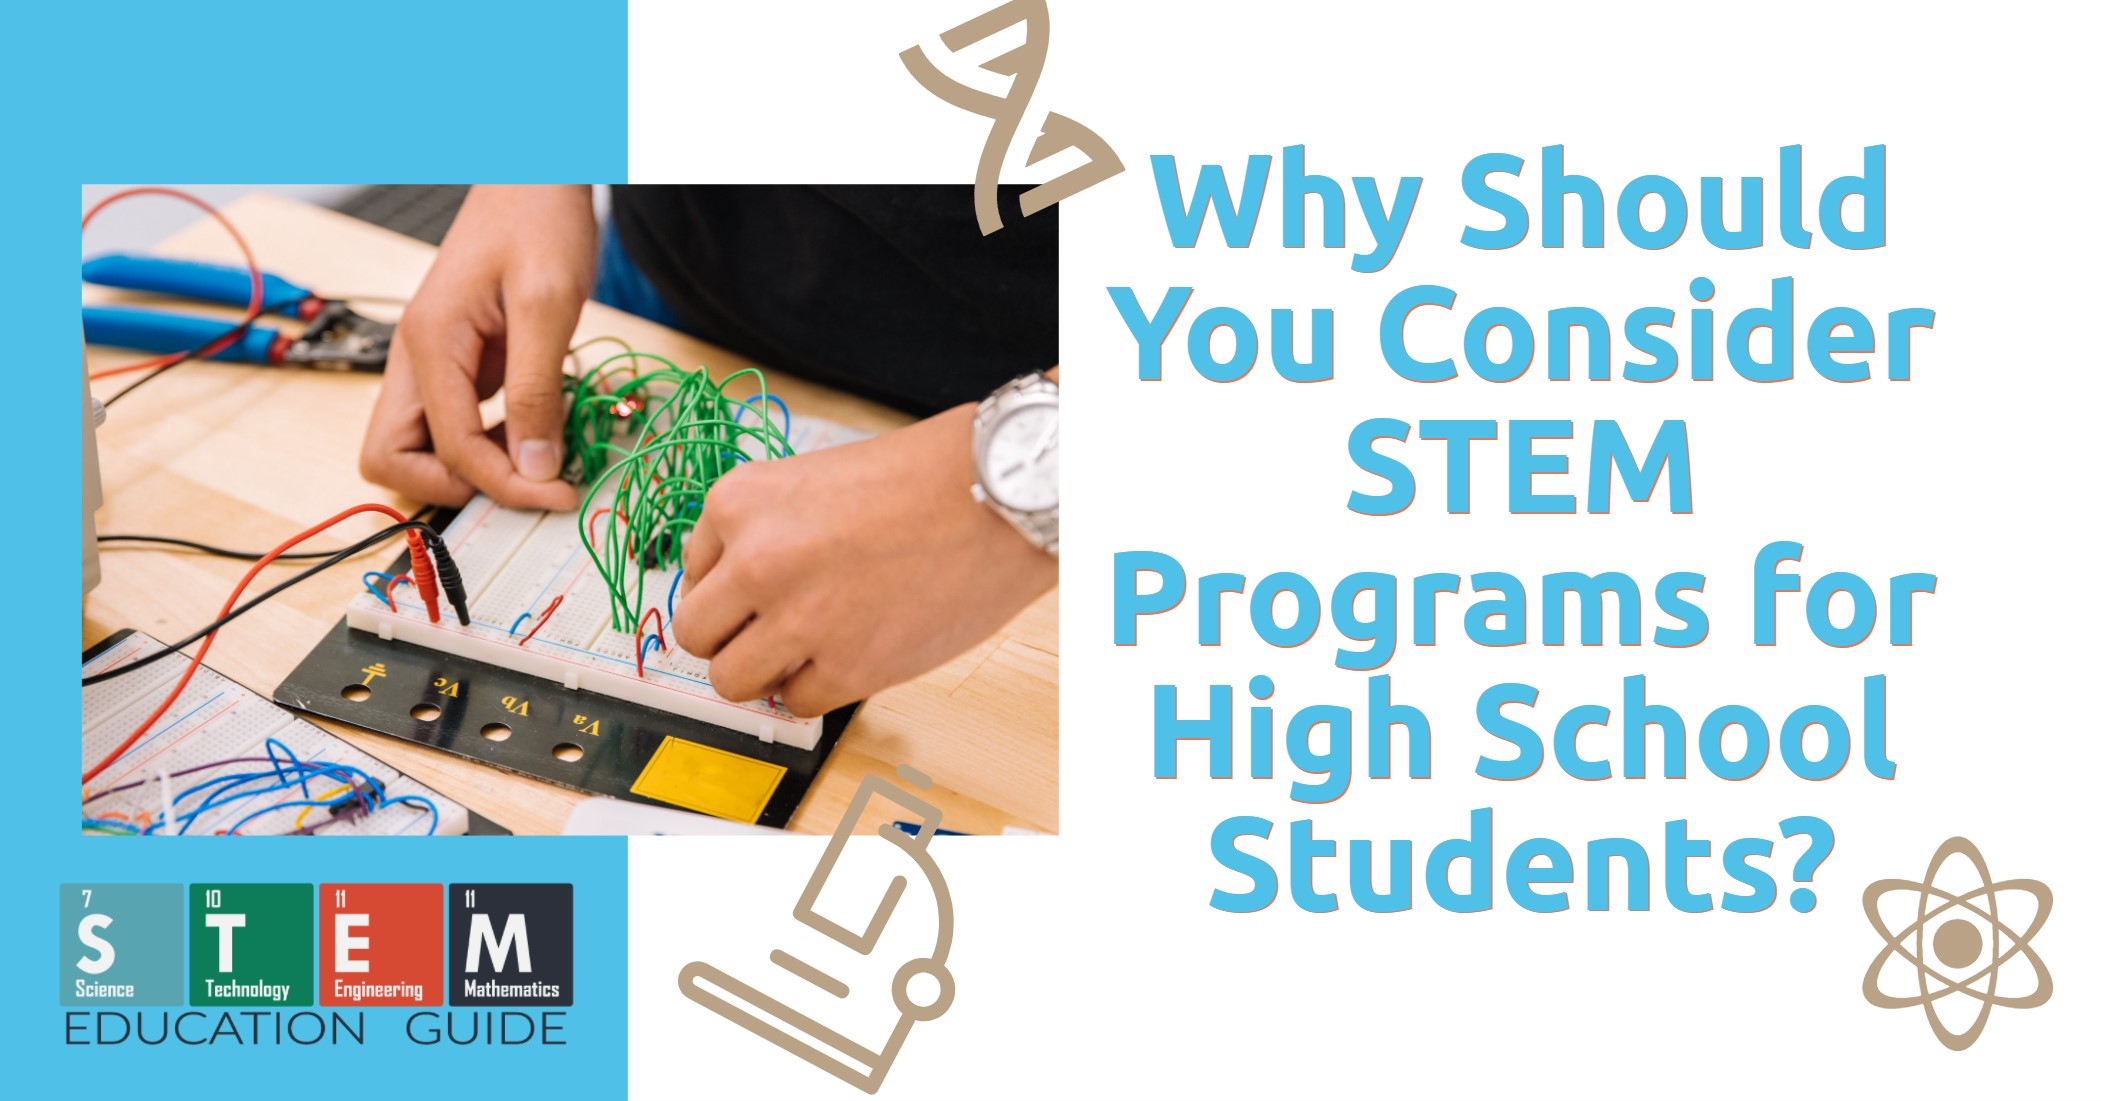 Why Should You Consider STEM Programs for High School Students